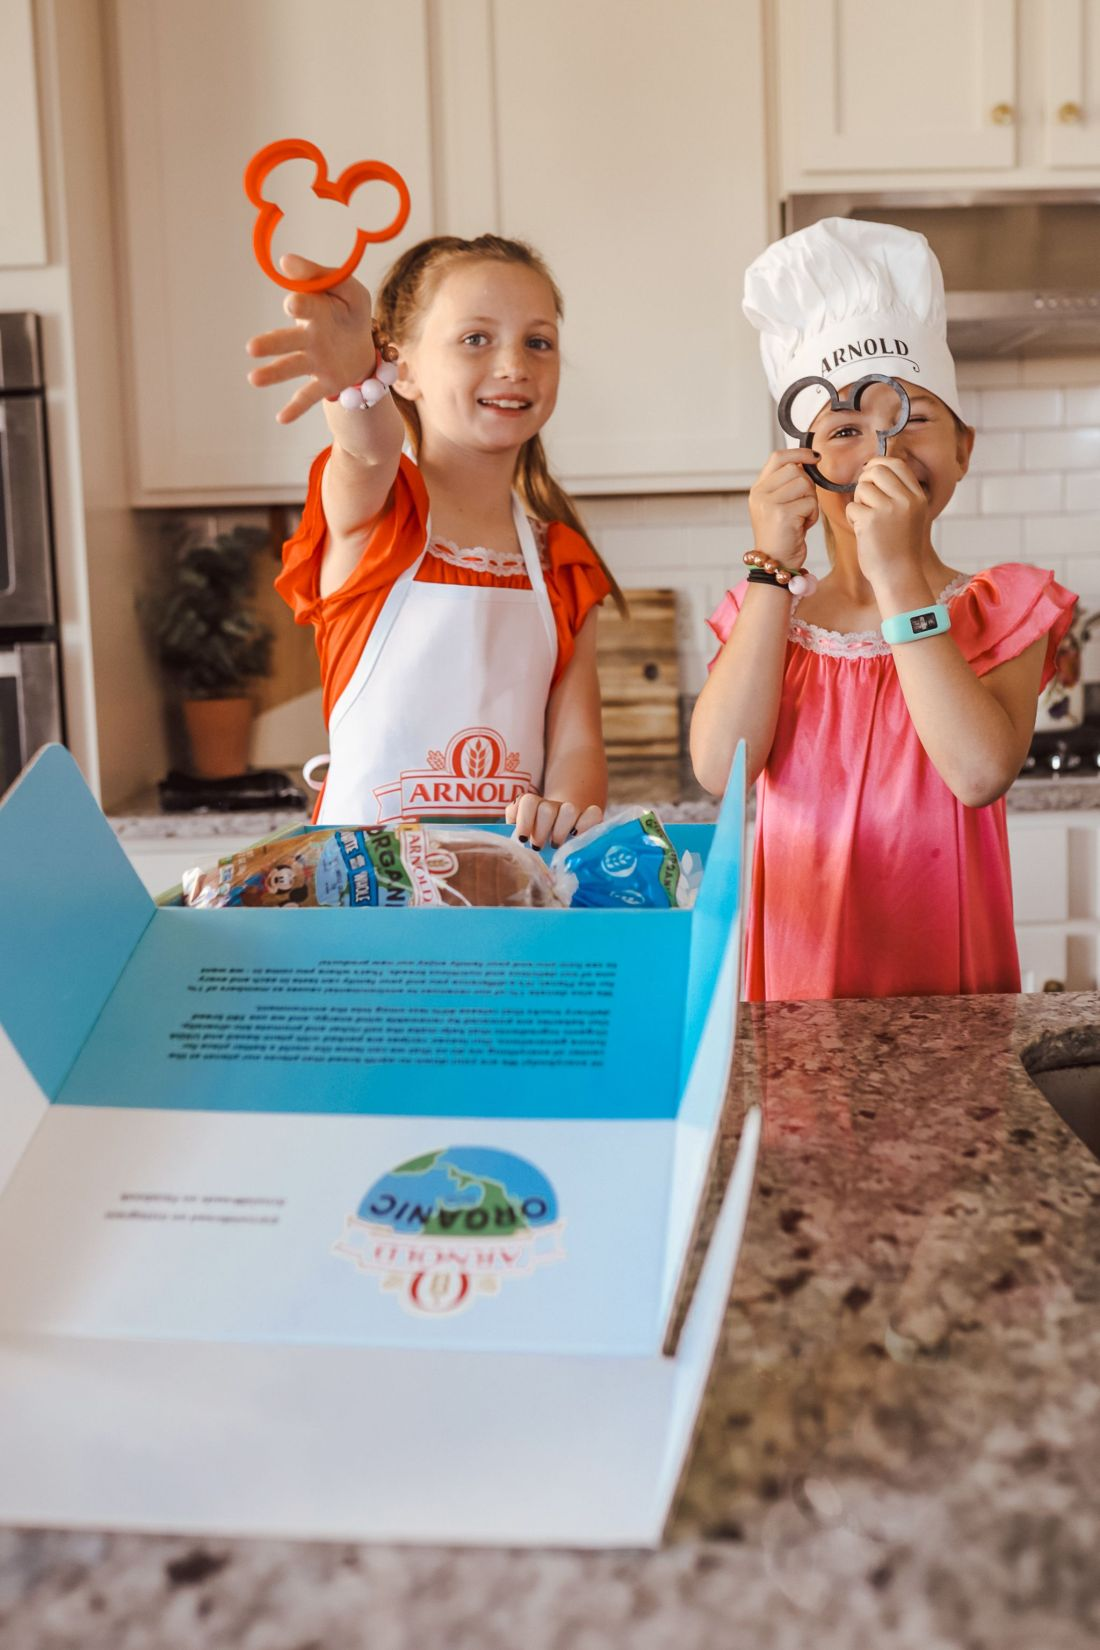 Kid Friendly Meal Ideas by popular Nashville lifestyle blog, Modern Day Moguls: image of two young girls wearing a chef hat and apron and holding Mickey Mouse shaped cutters in front of an open box of Arnold Organic Bread.